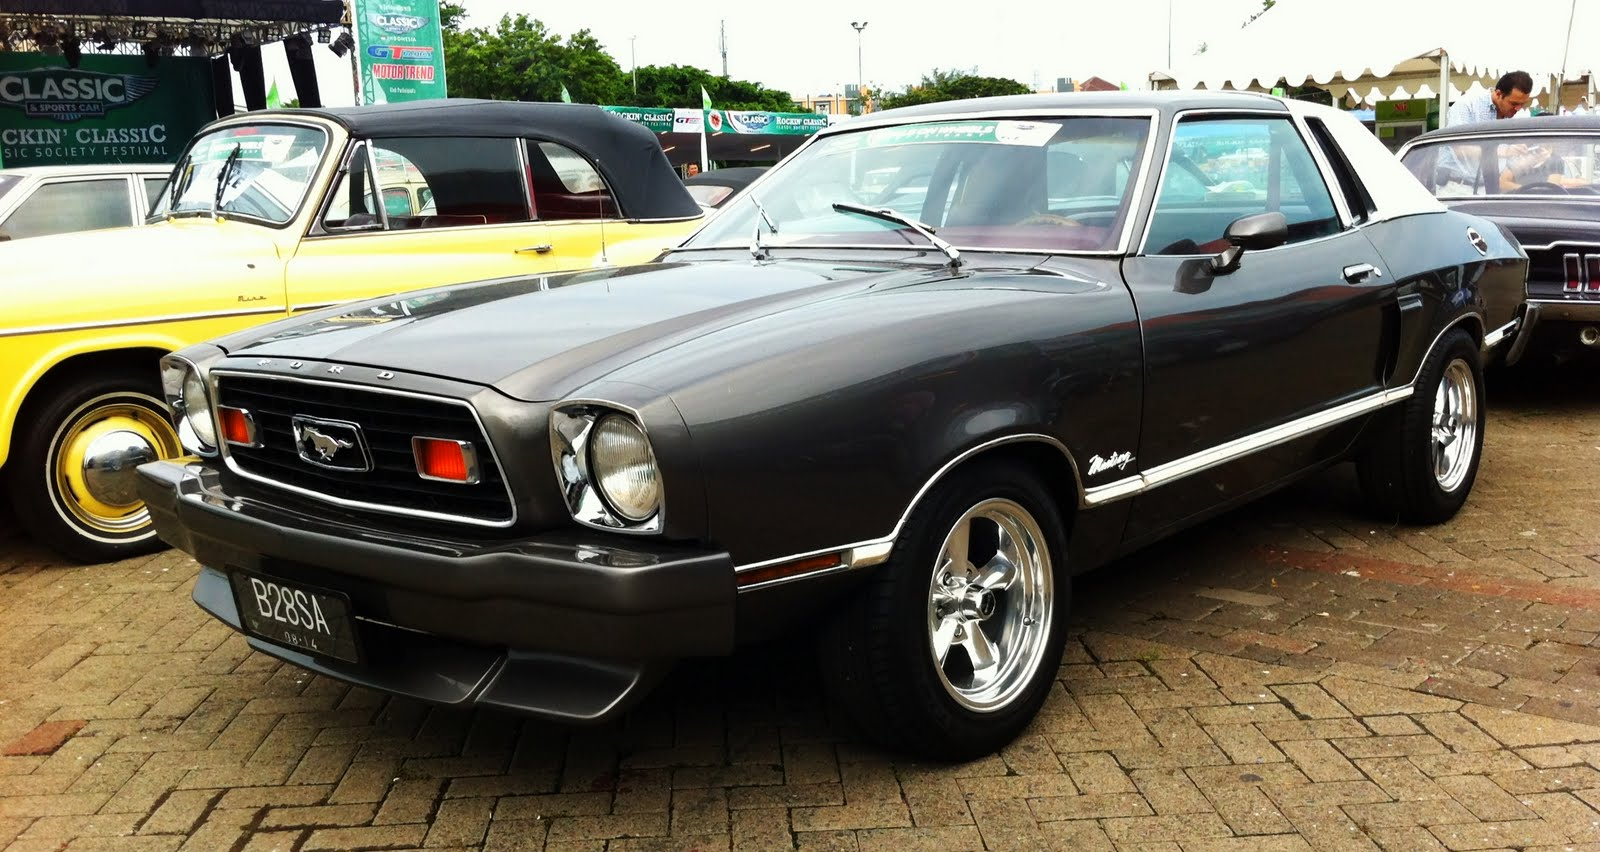 Classic Ford Mustang In Indonesia